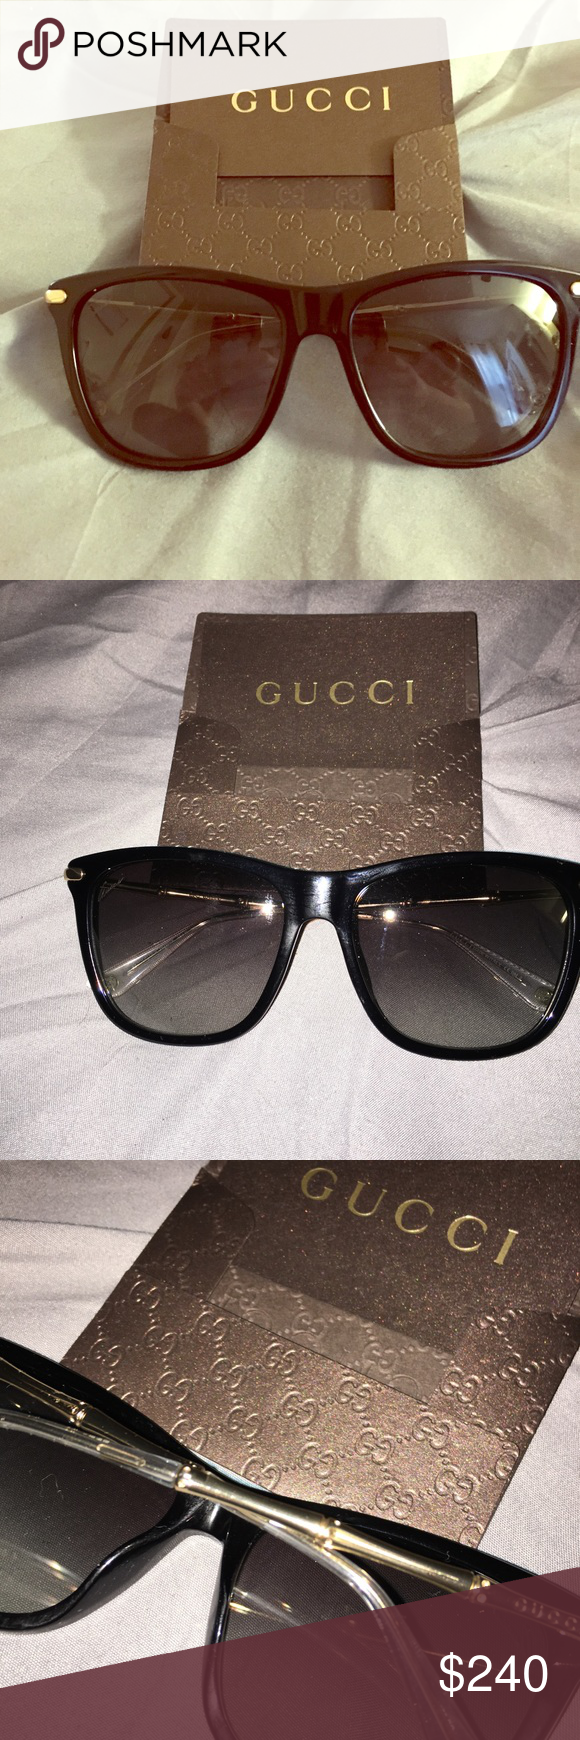 ac03e7c92e5 Gucci Women s Sunglasses! BRAND NEW! Gucci Sunglasses!